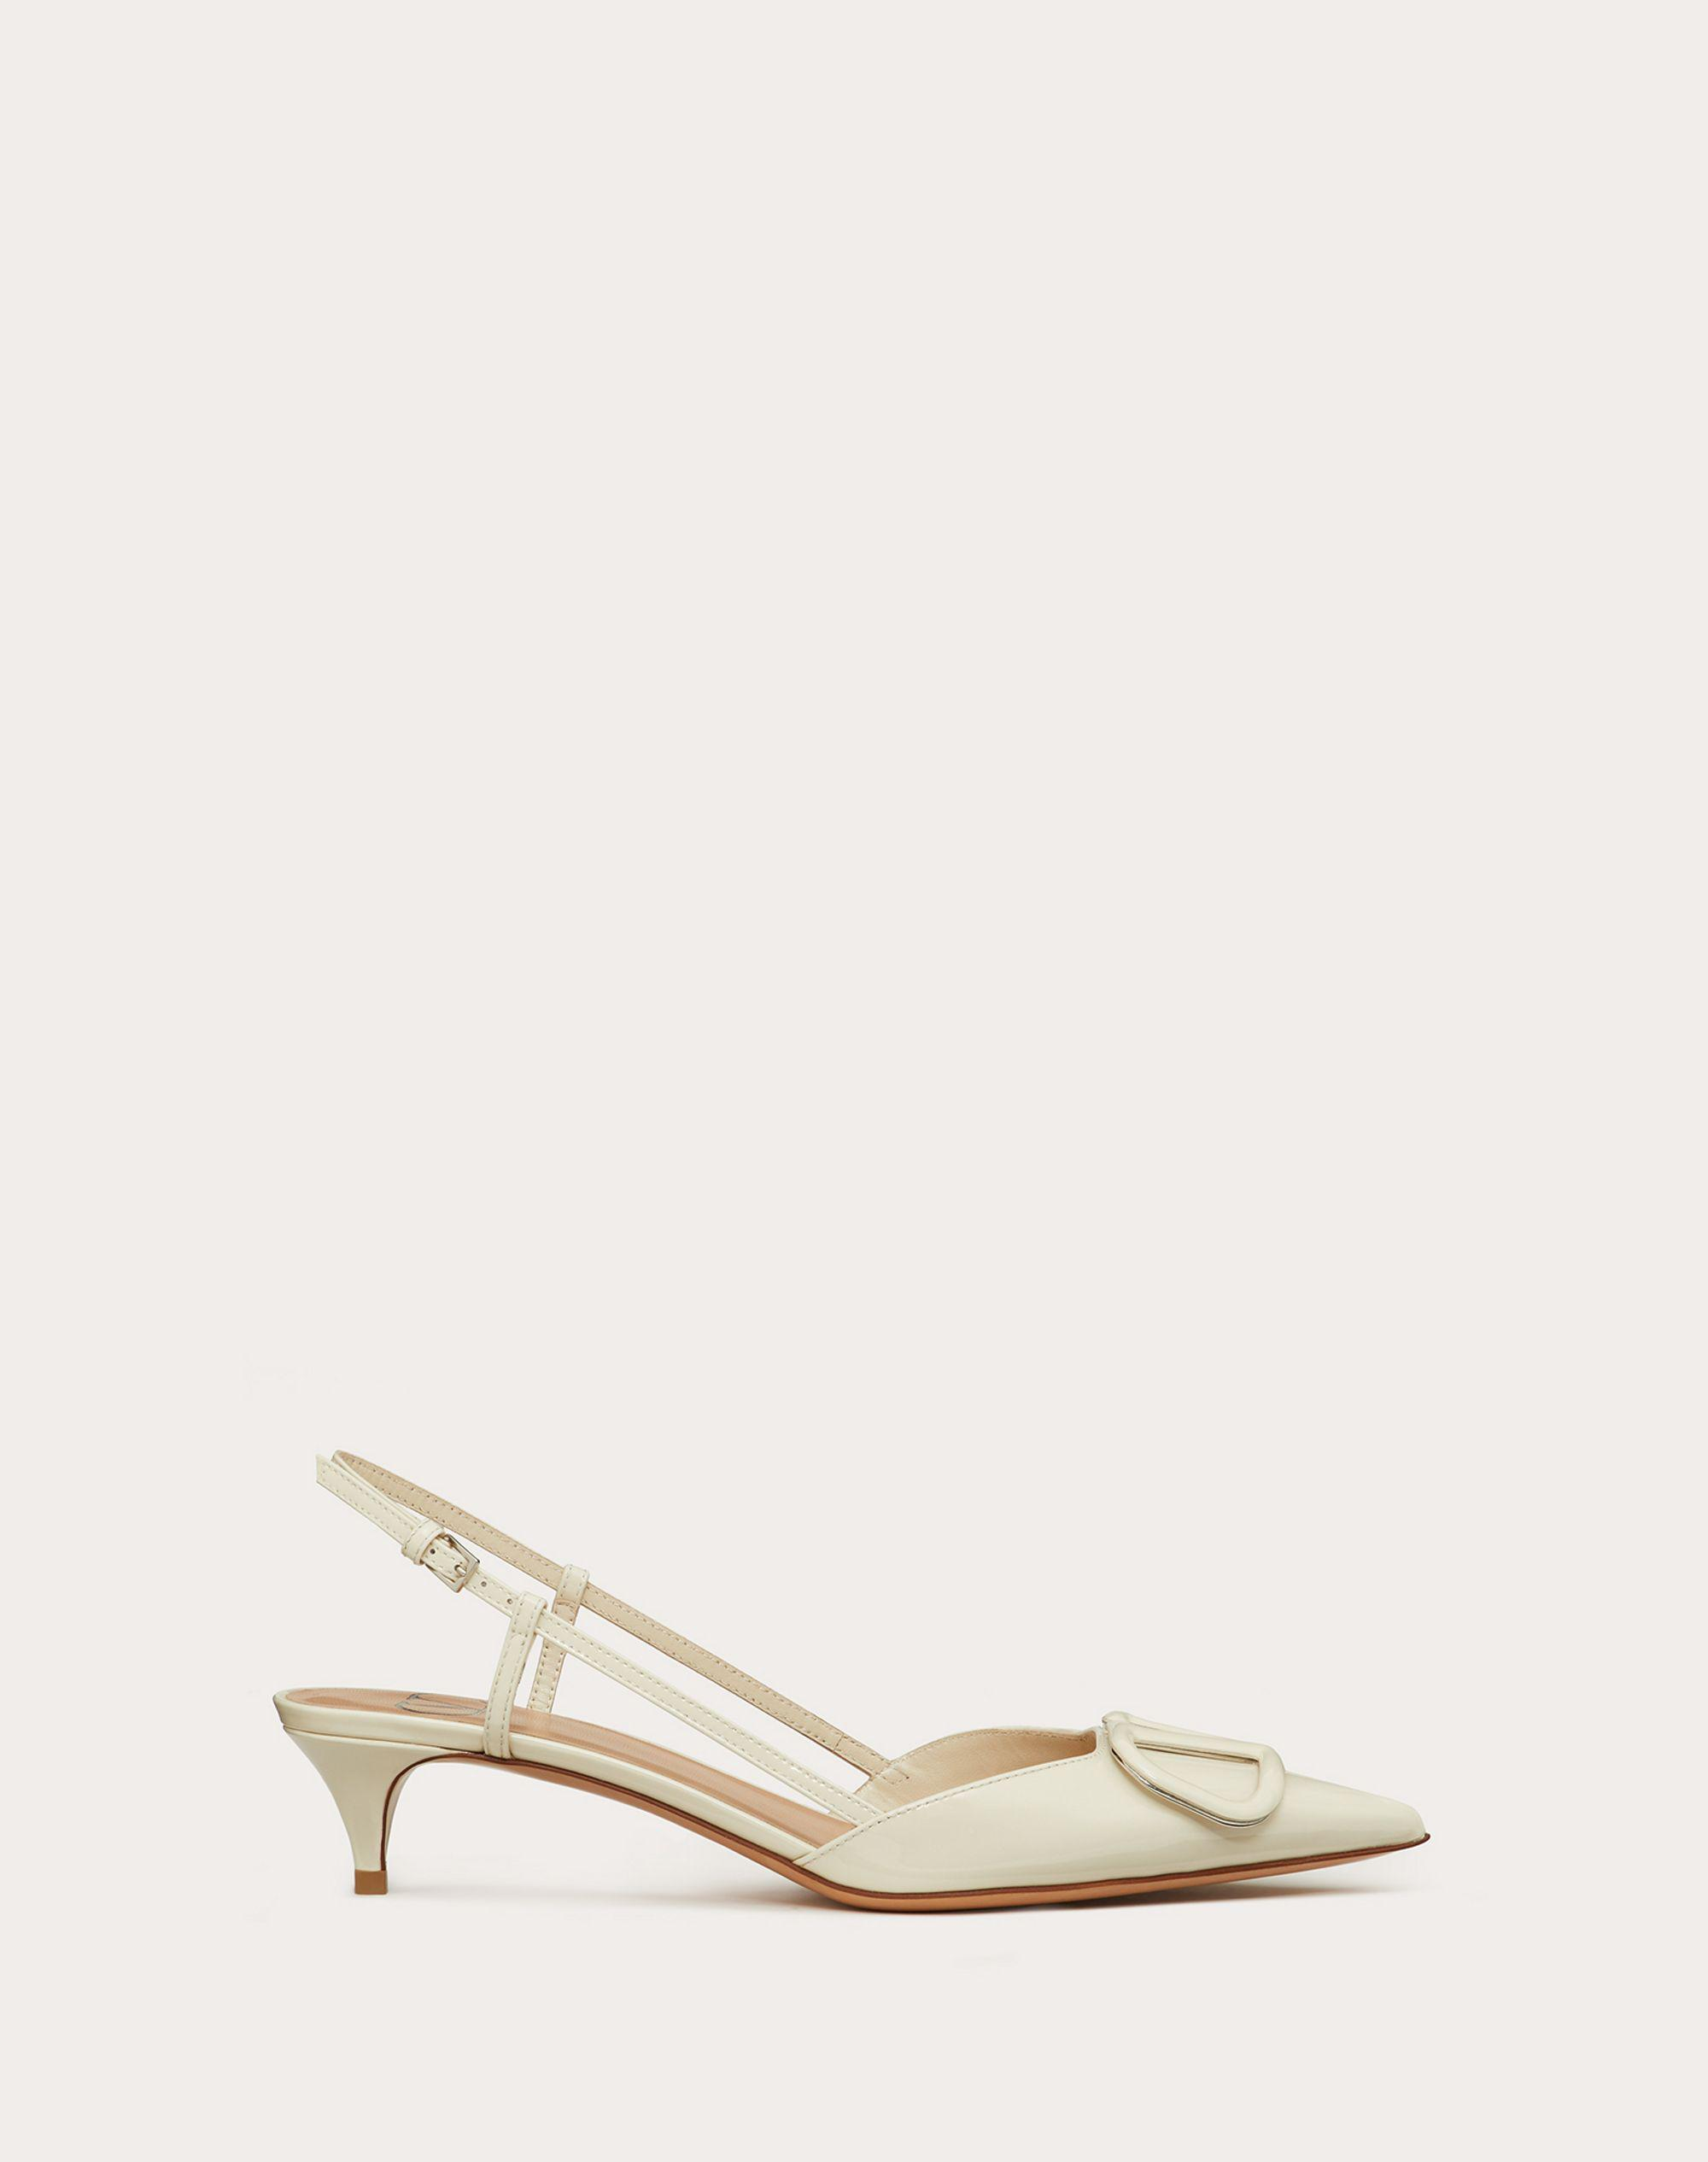 VLogo Signature Patent Leather Slingback Pump 40mm / 1.6 in.